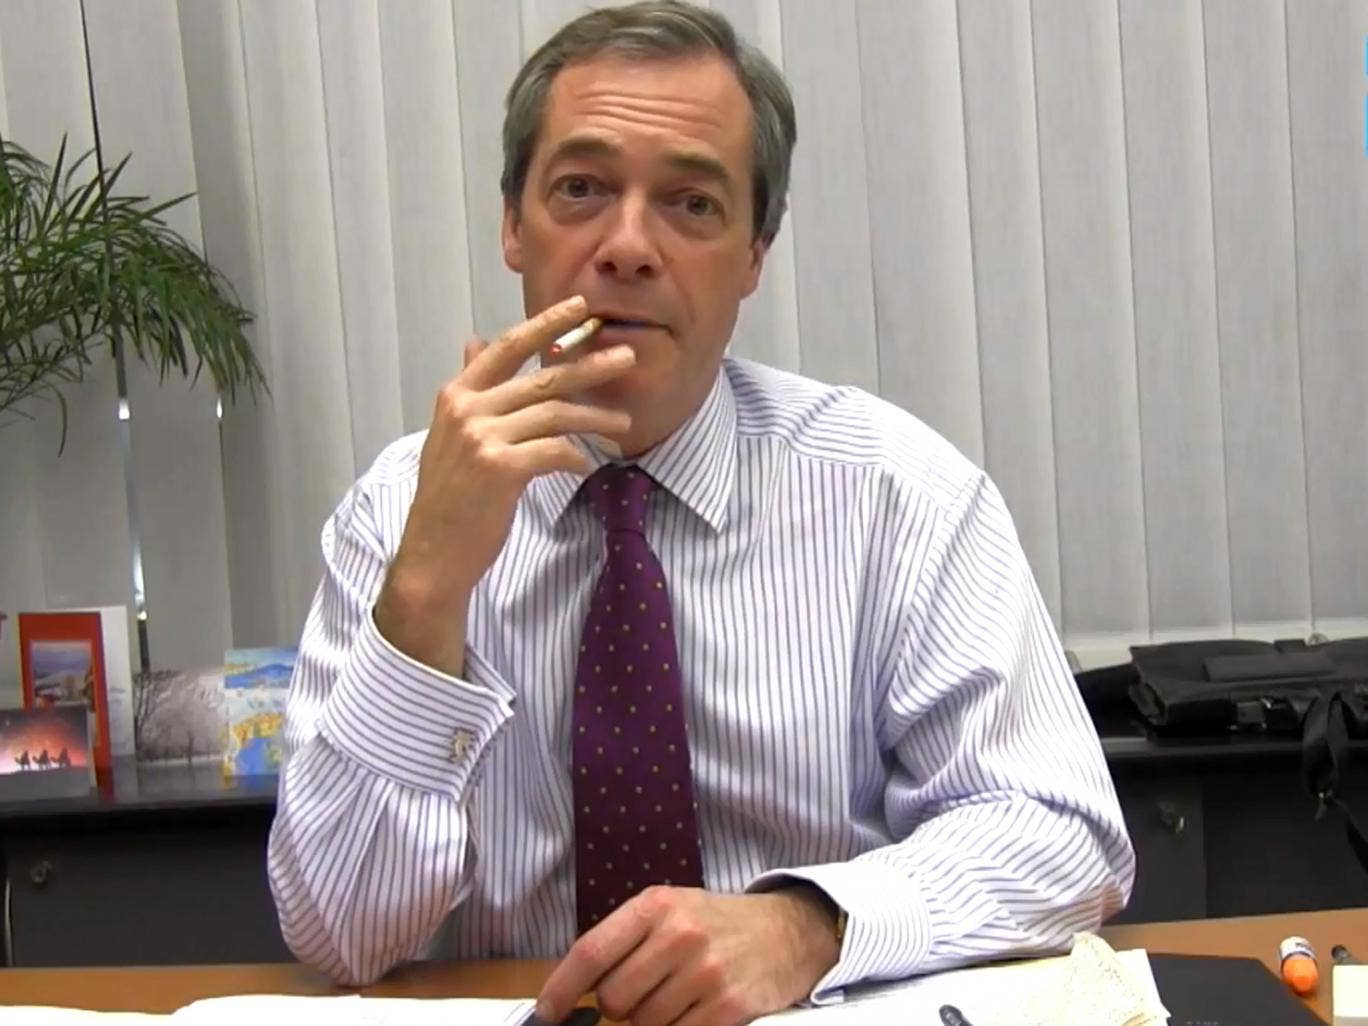 Nigel Farage appearing in a YouTube video endorsing electronic cigarettes